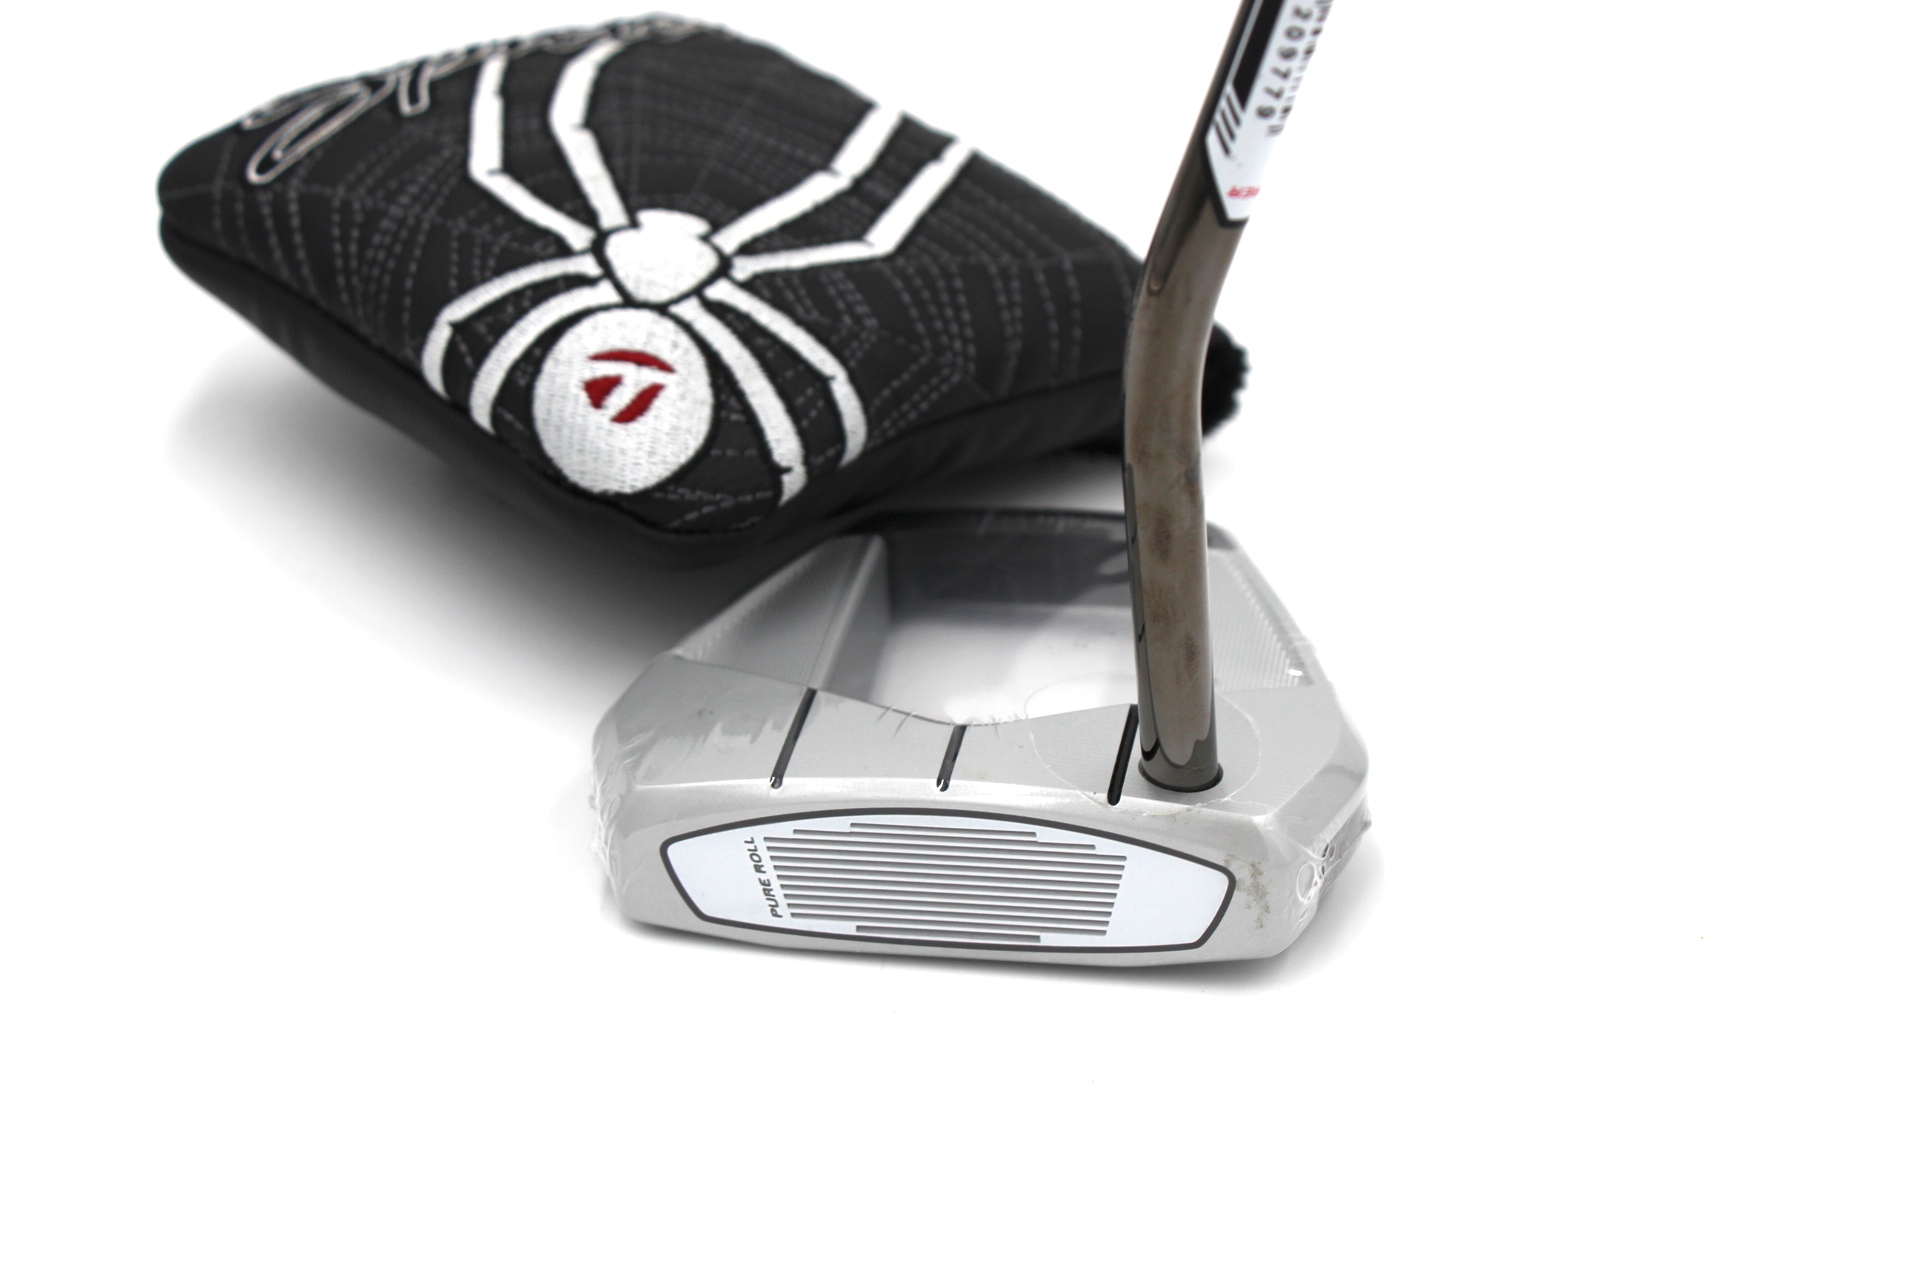 TaylorMade Spider S Black Putter